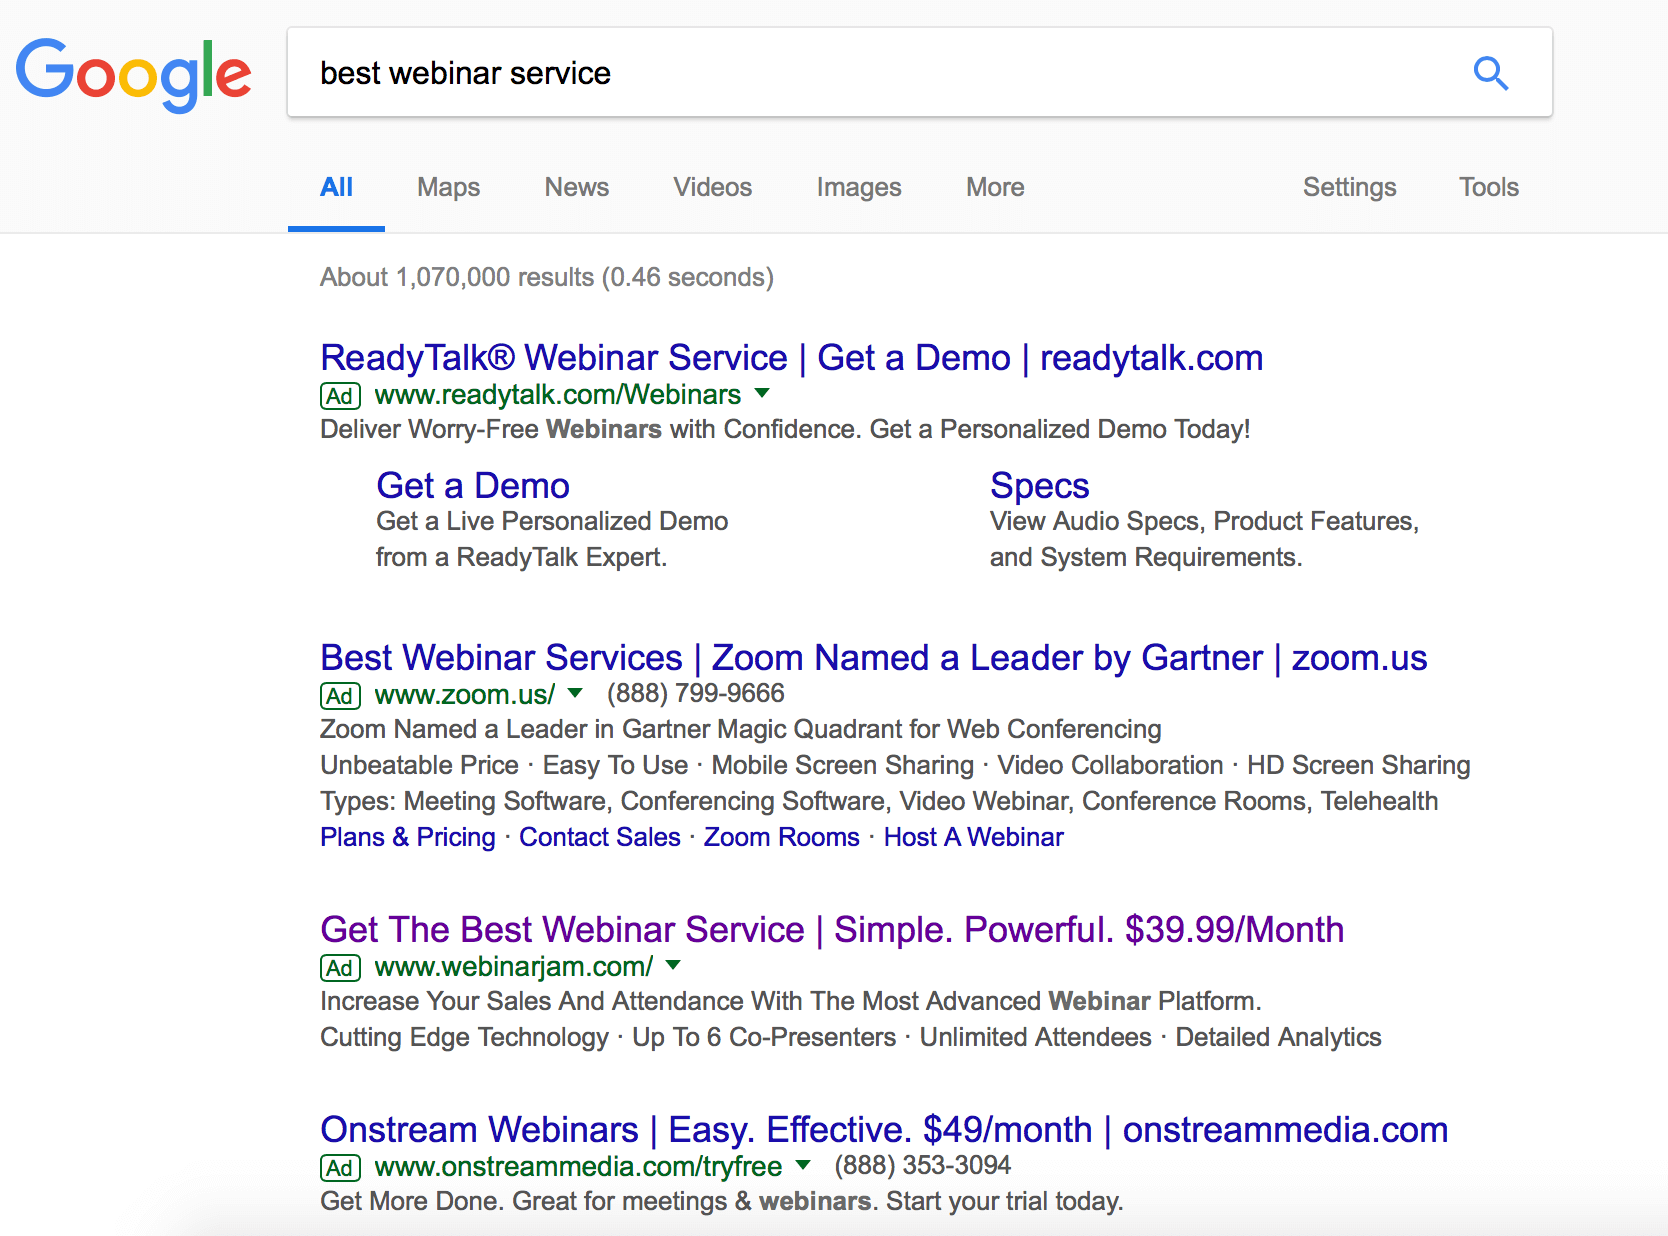 Google Search Results of best webinar service